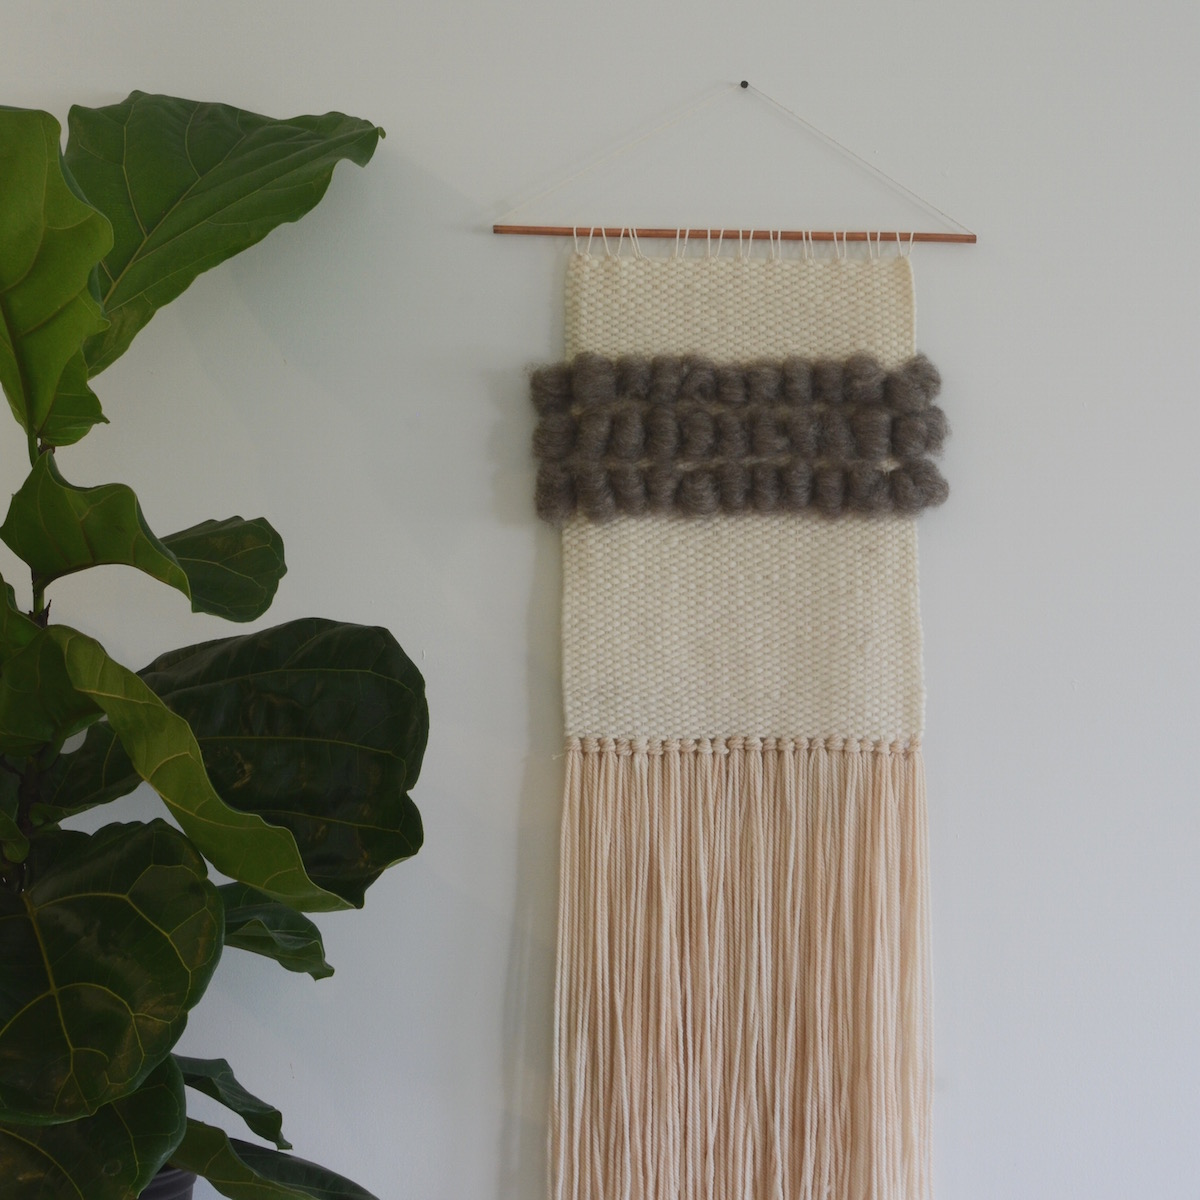 Handmade wall weaving